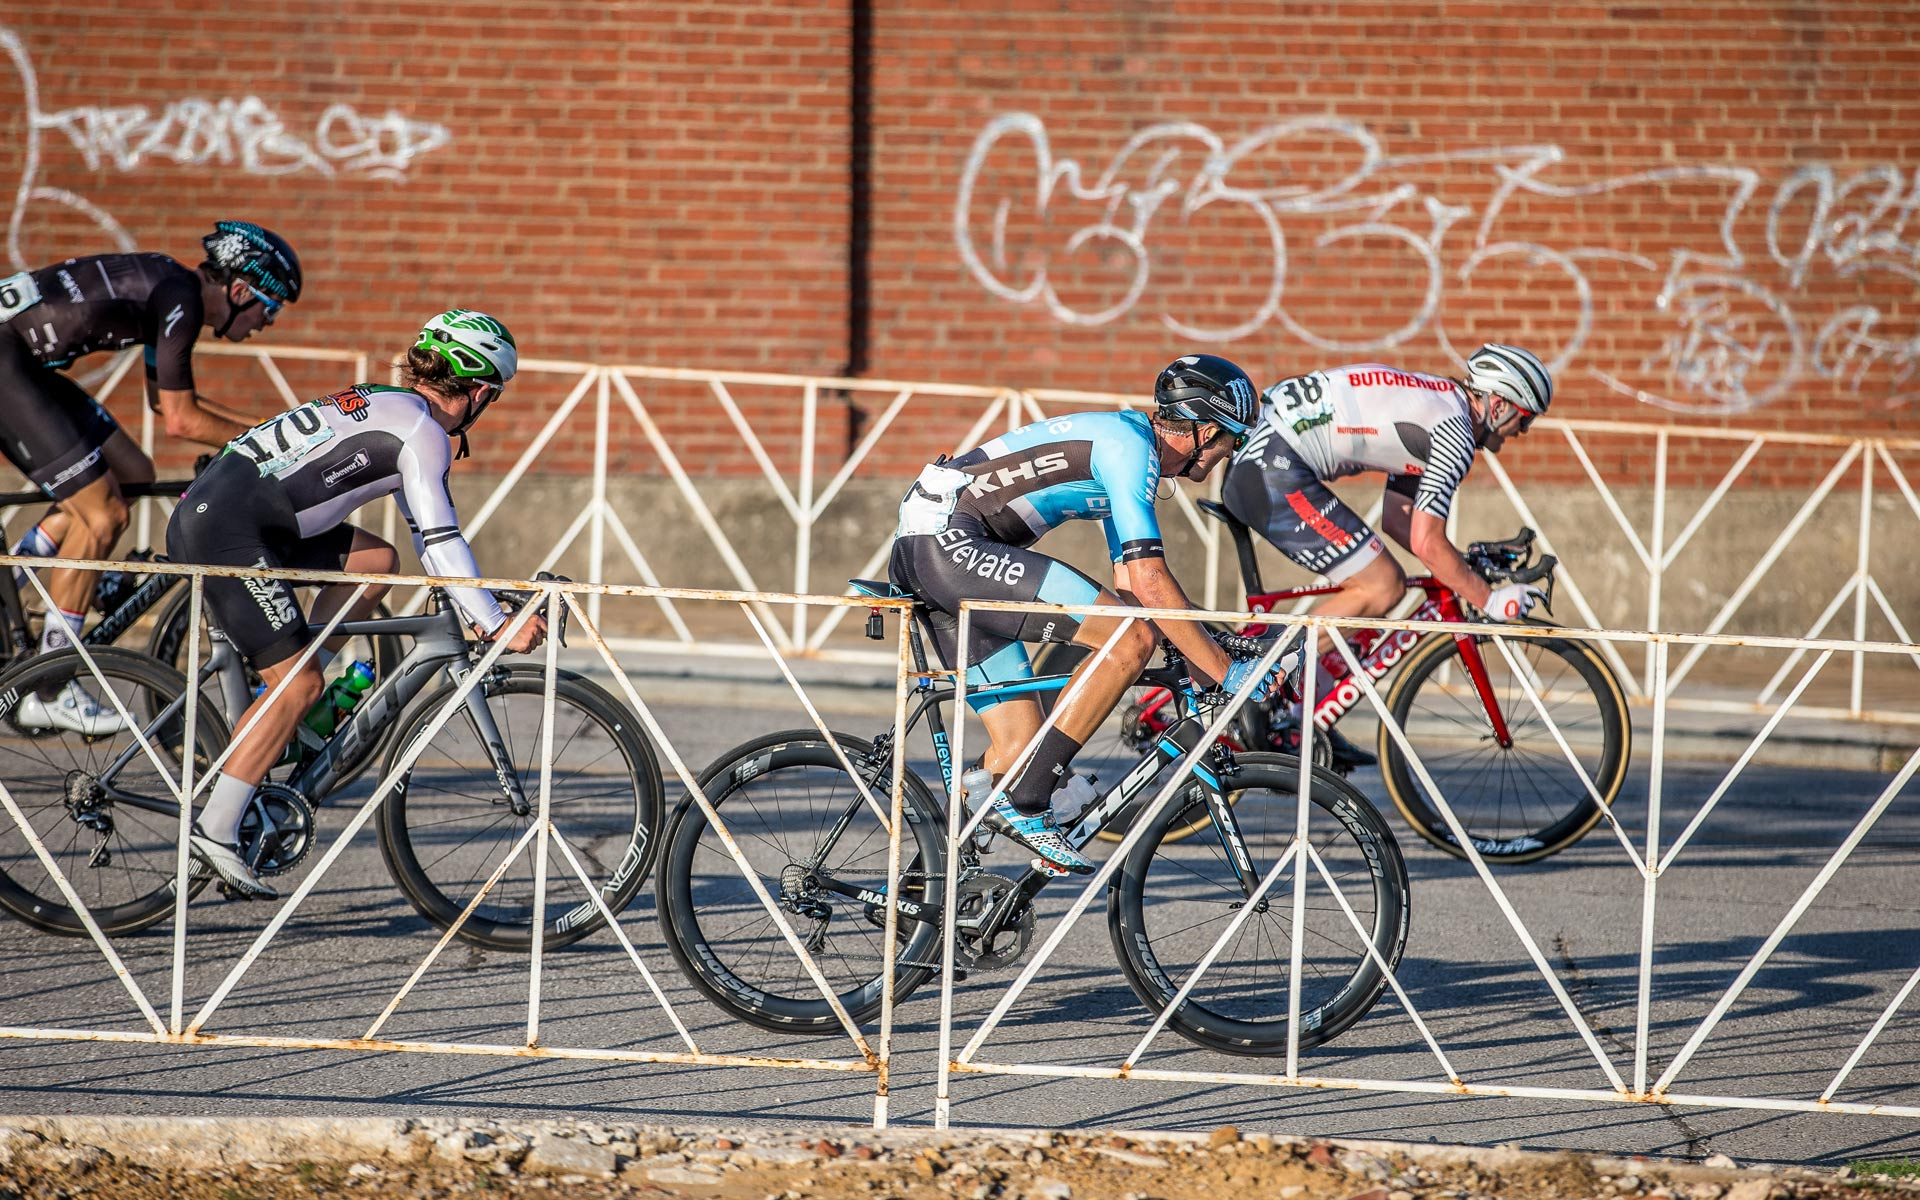 Elevate KHS Team racer lining up for the sprint